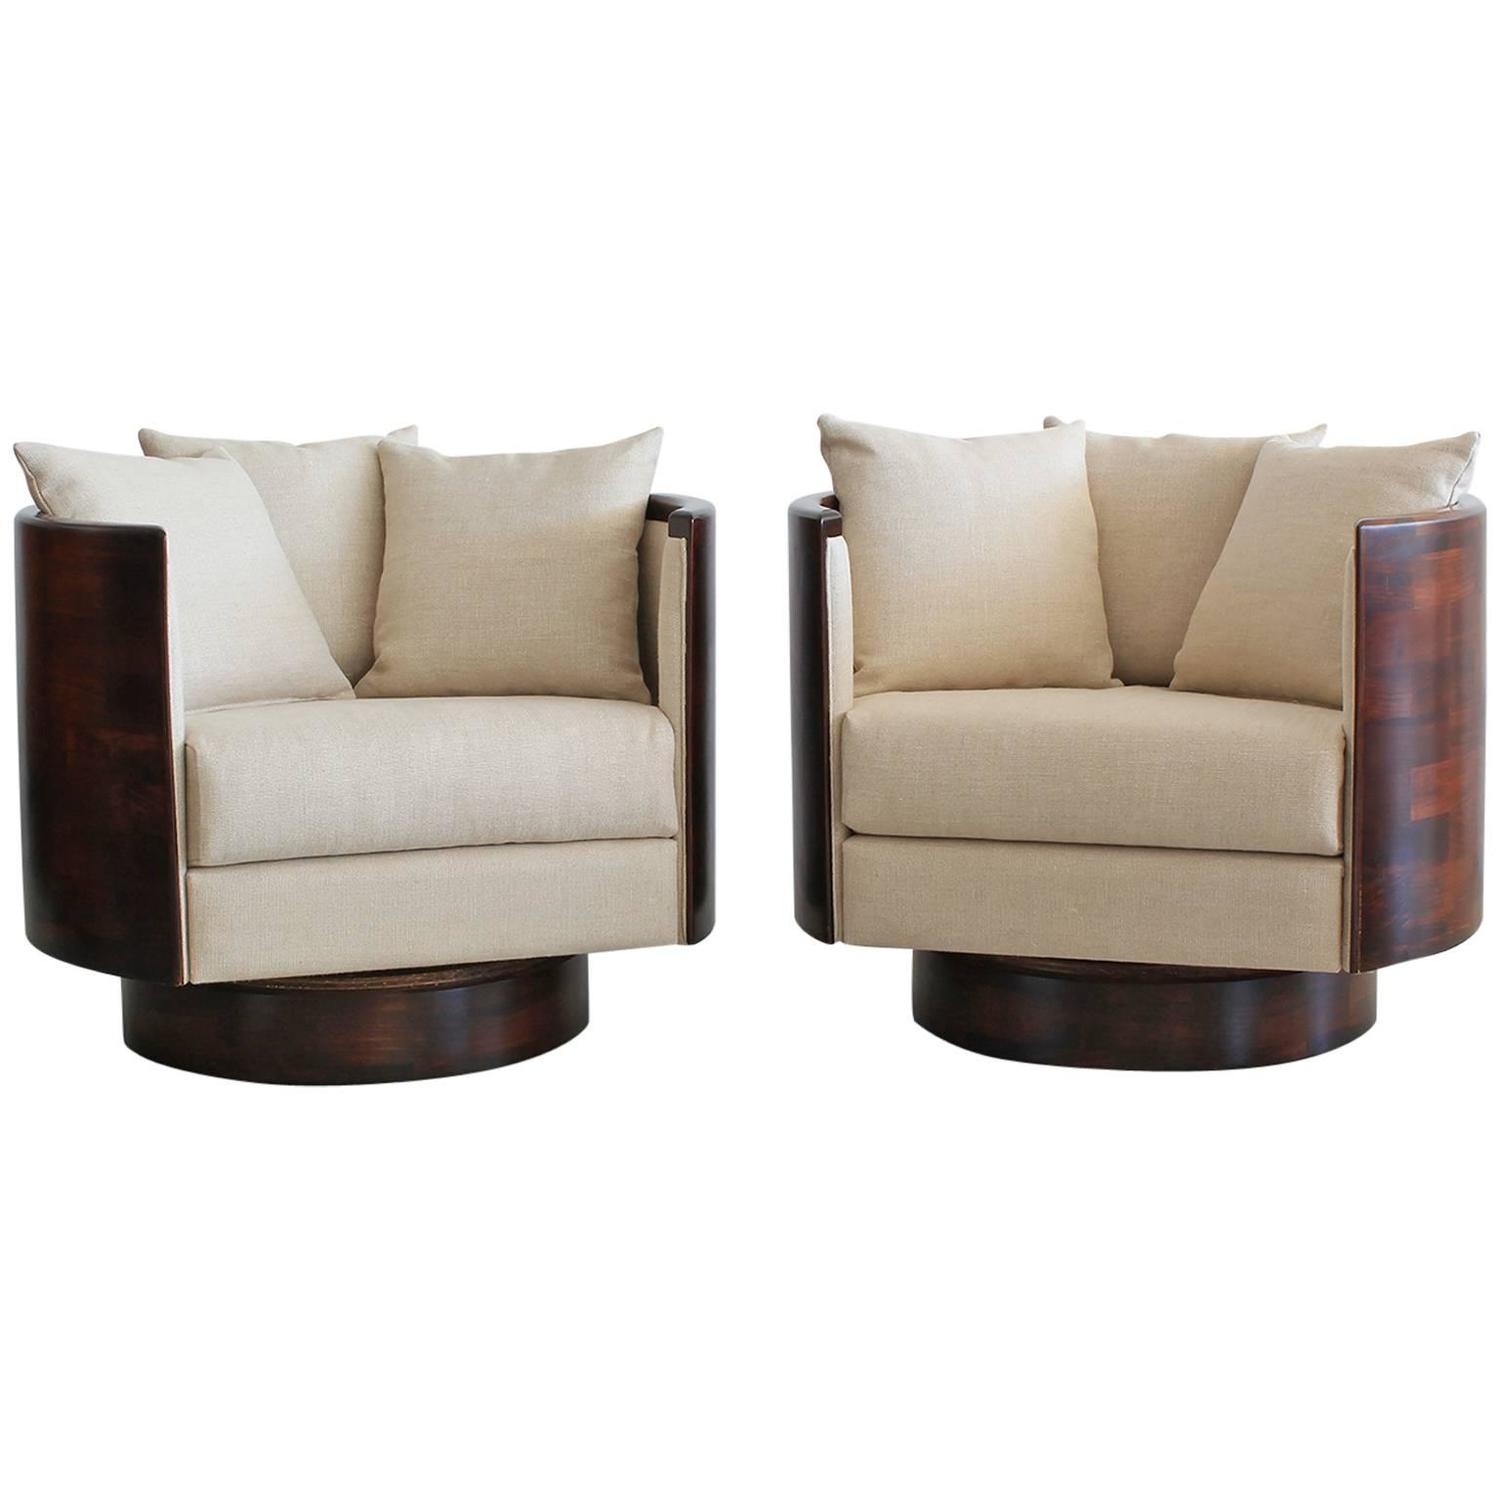 barrel back swivel chair for sale at 1stdibs. Black Bedroom Furniture Sets. Home Design Ideas